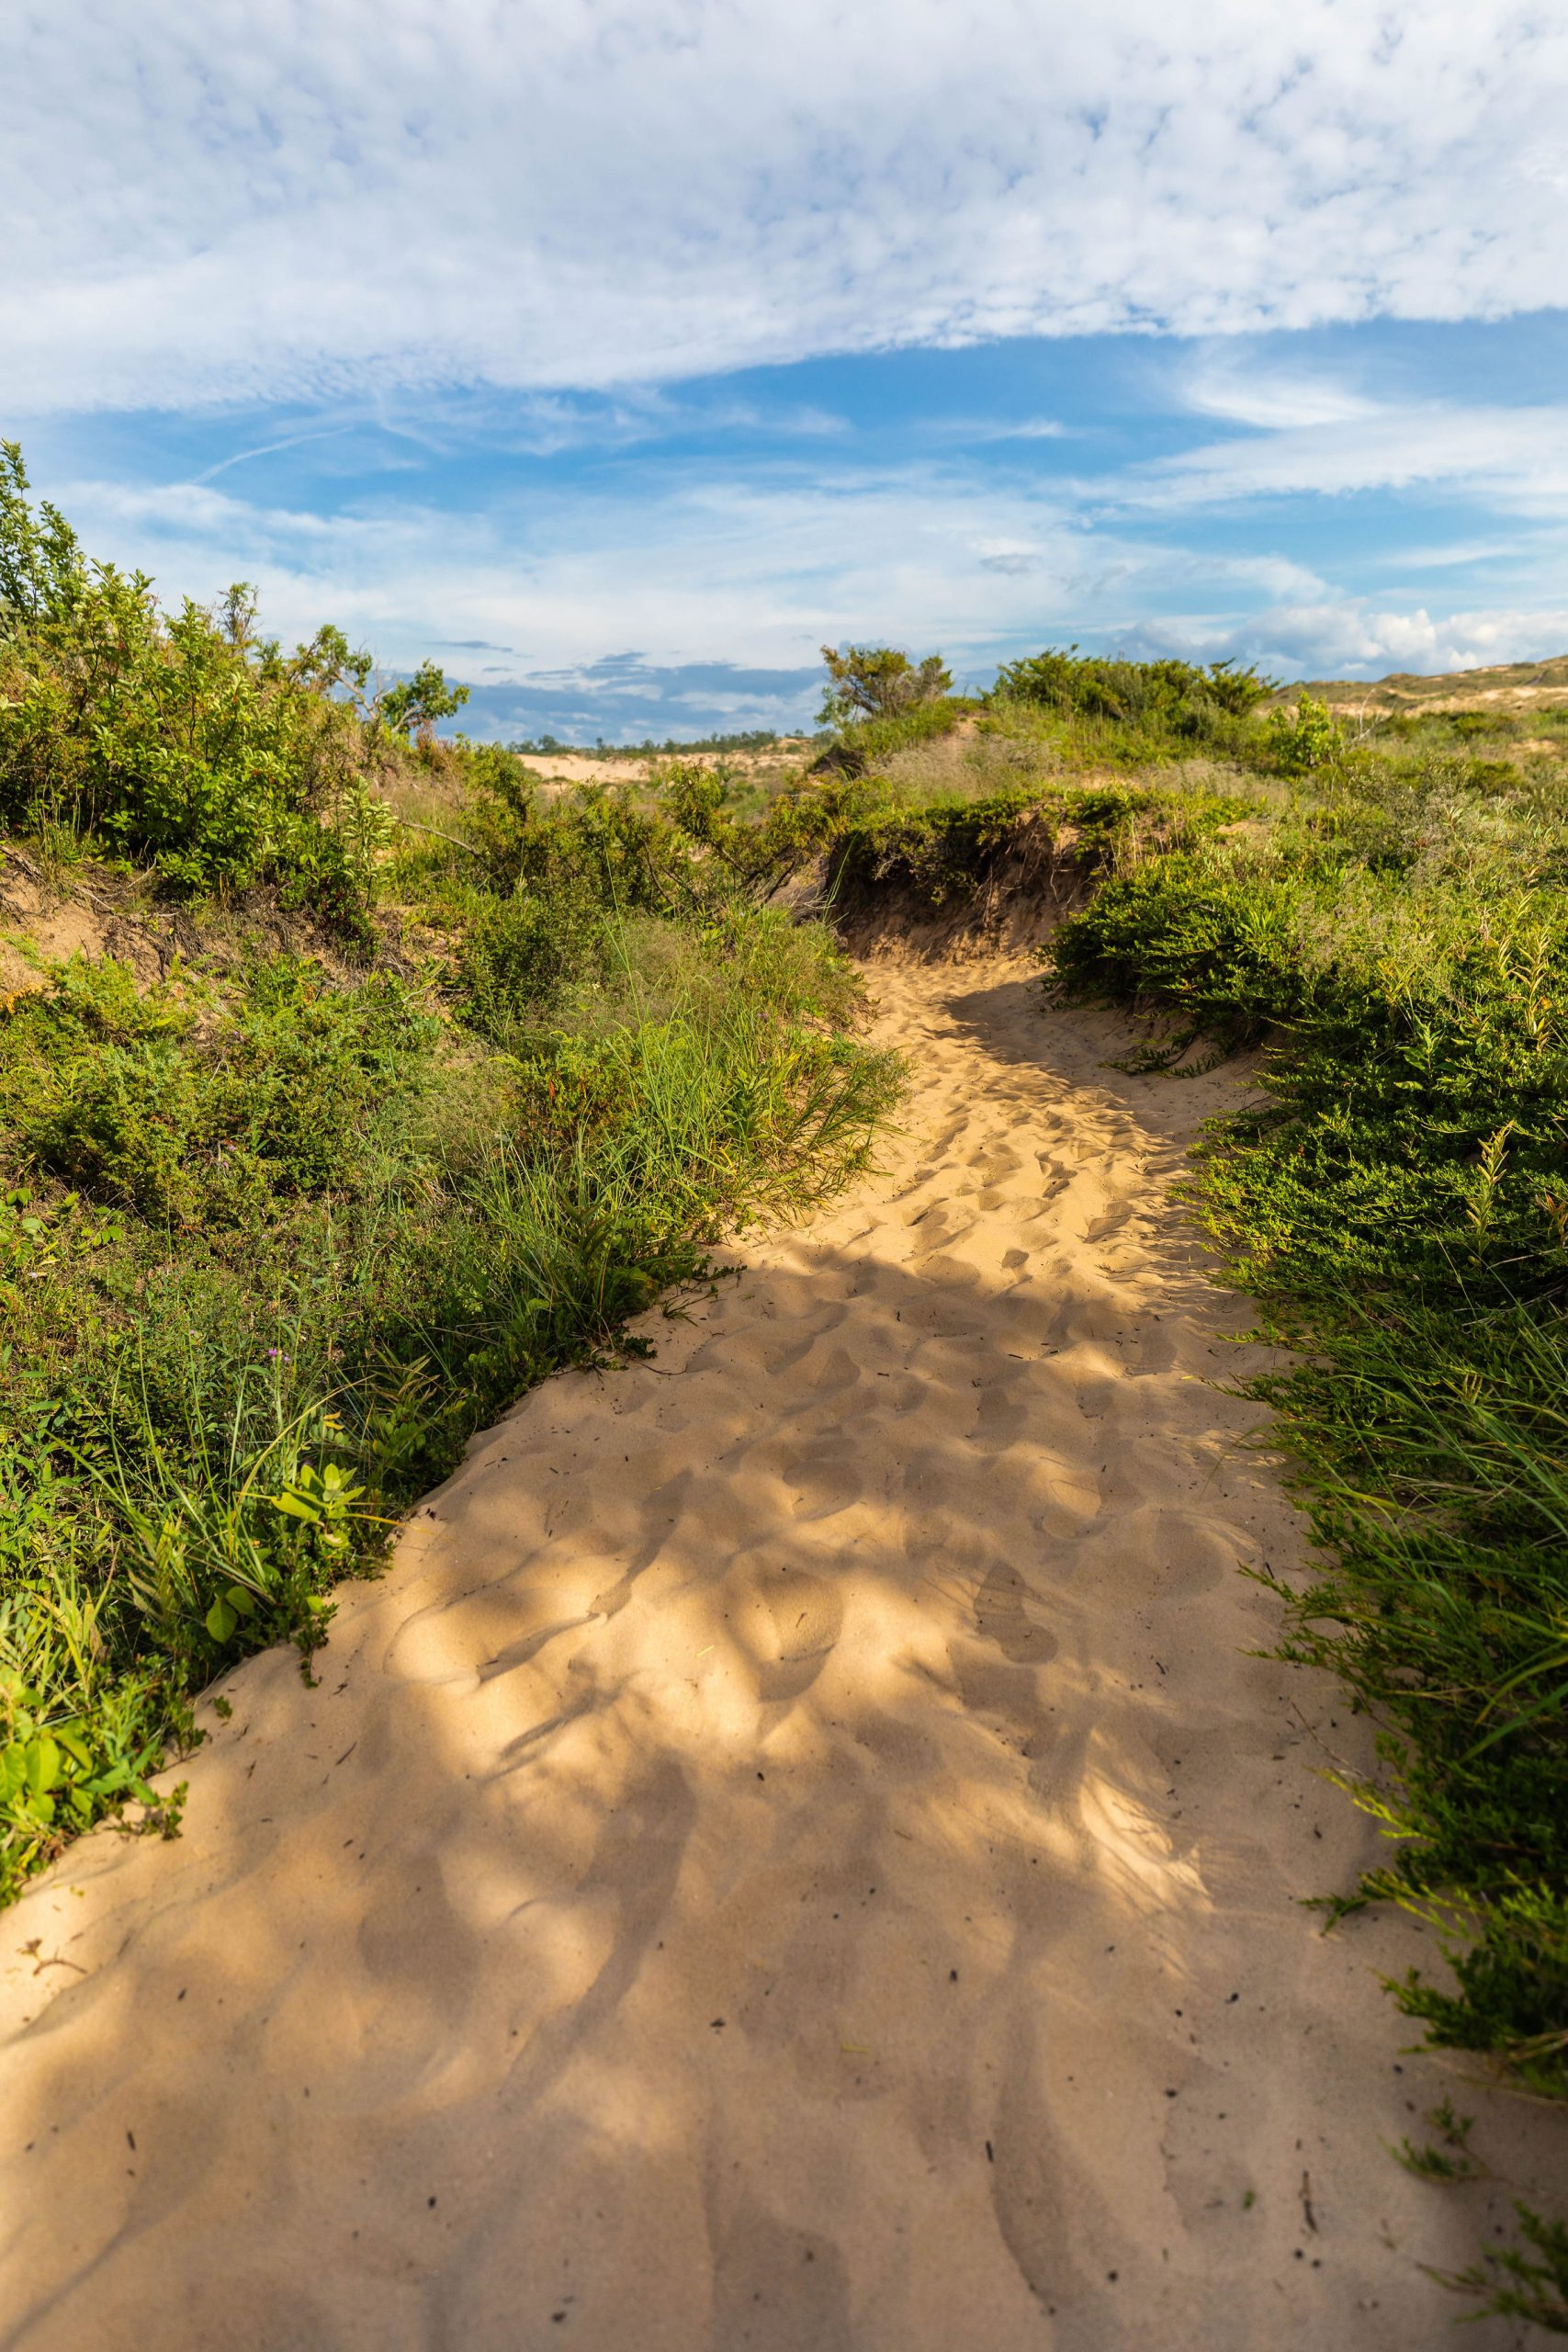 Hiking the Paths at Sleeping Bear Dunes National Lakeshore Incredible Hiking, Swimming, and Birding Most Beautiful Place in America by Annie Fairfax